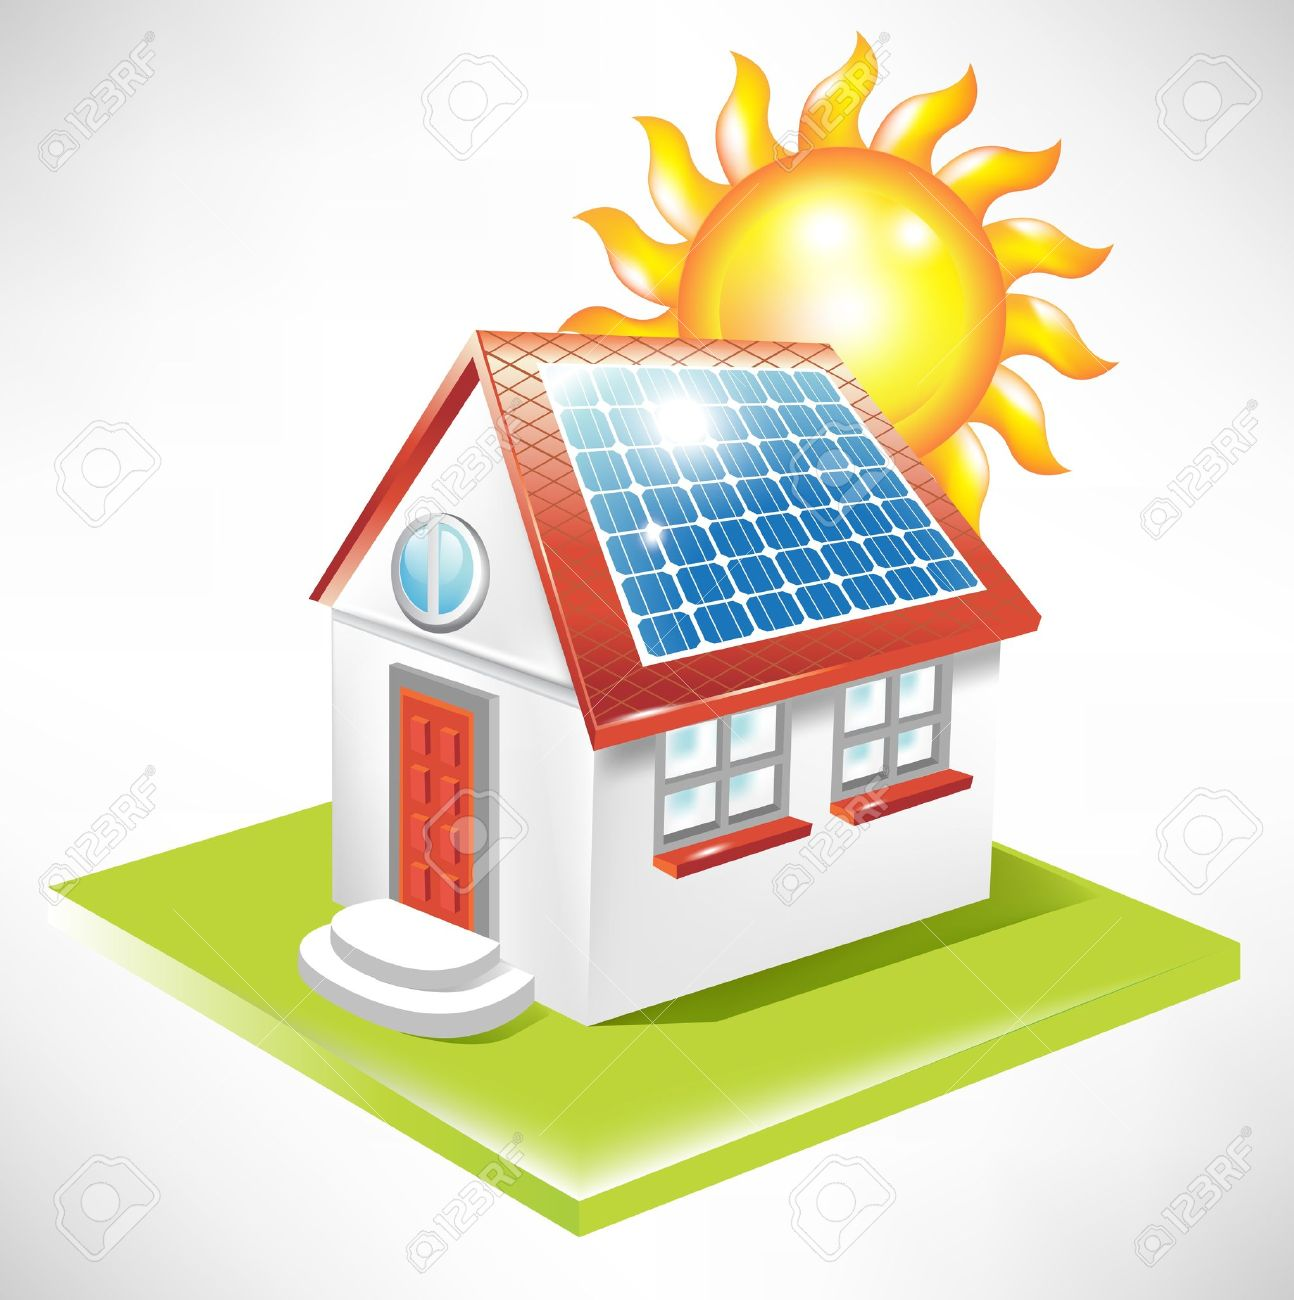 1294x1300 Collection Of Solar Panel On House Clipart High Quality